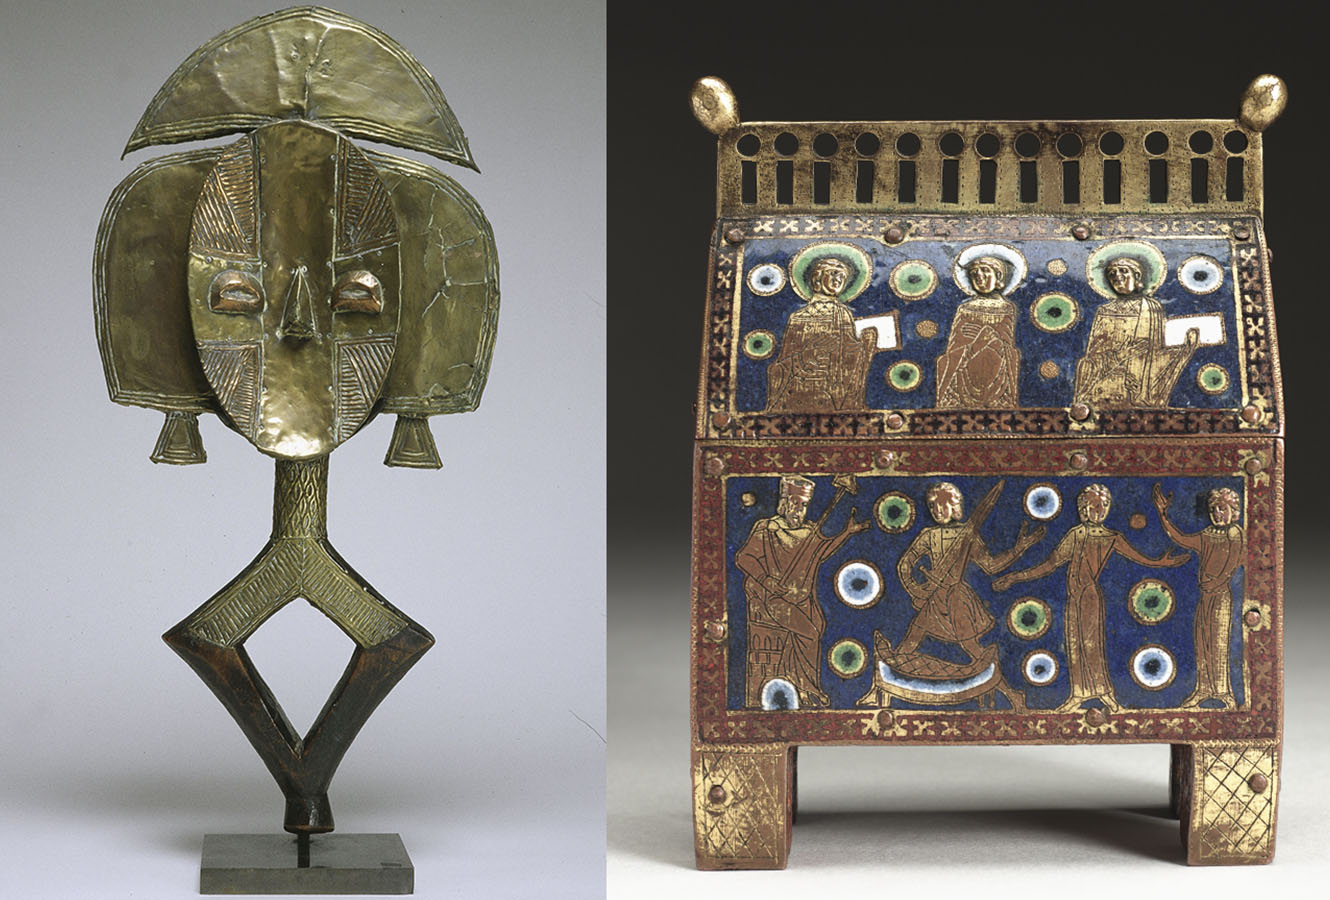 Brass sculpture of an abstract figure. Reliquary decorated with religious figures in enamel.